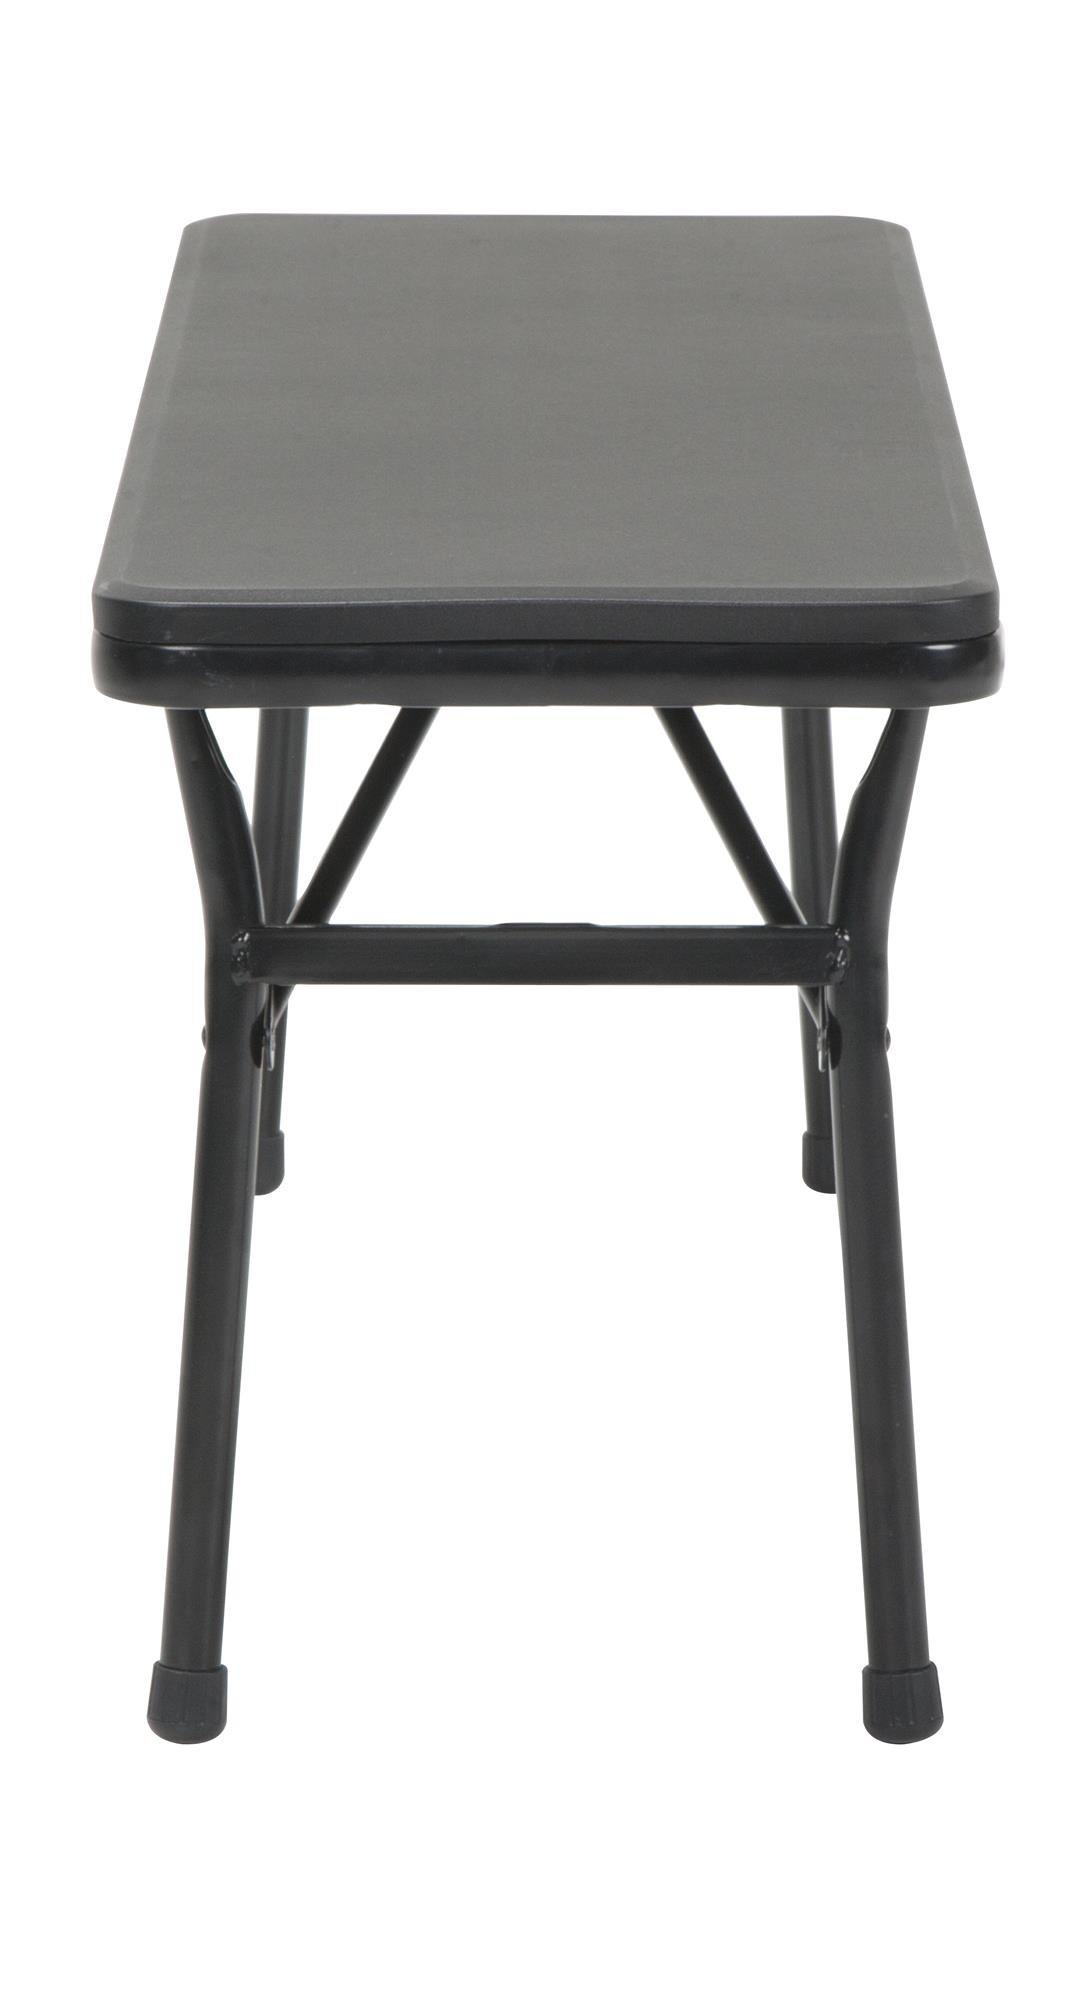 Cosco Products COSCO 3 Piece Indoor Outdoor Table and 2 Bench Tailgate Set, Black by Cosco Products (Image #11)